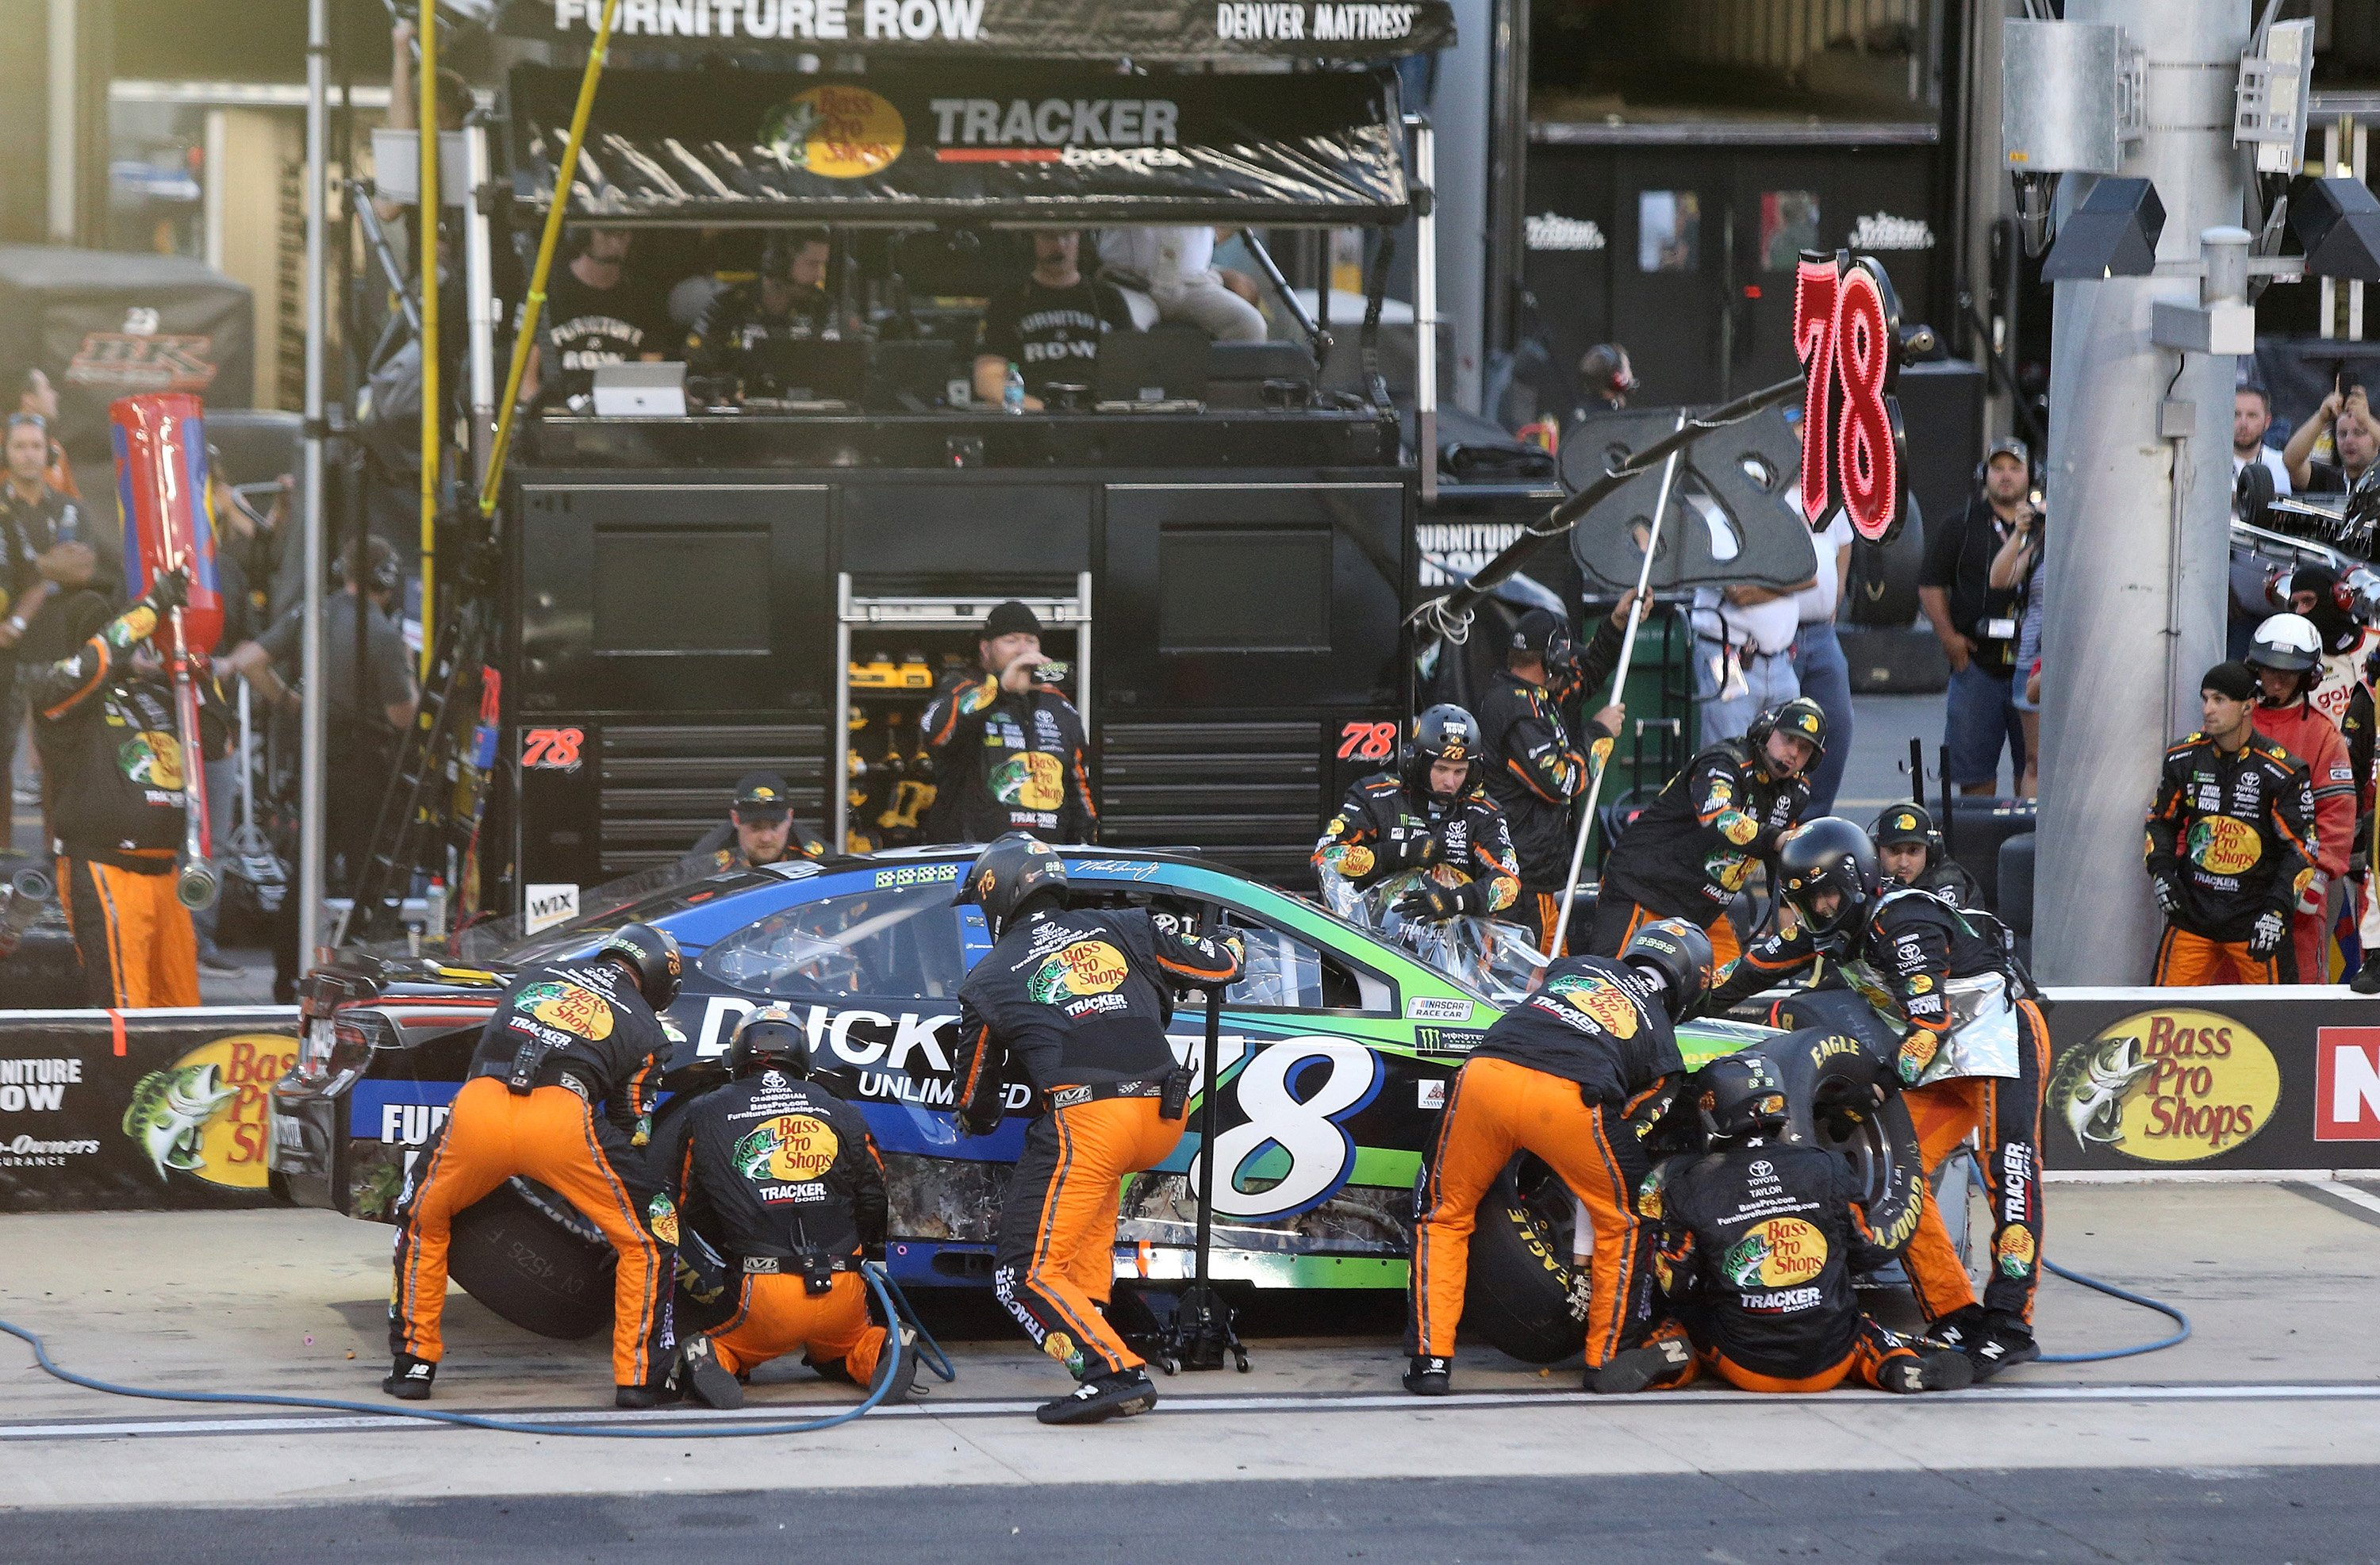 NASCAR pit stop rule changes